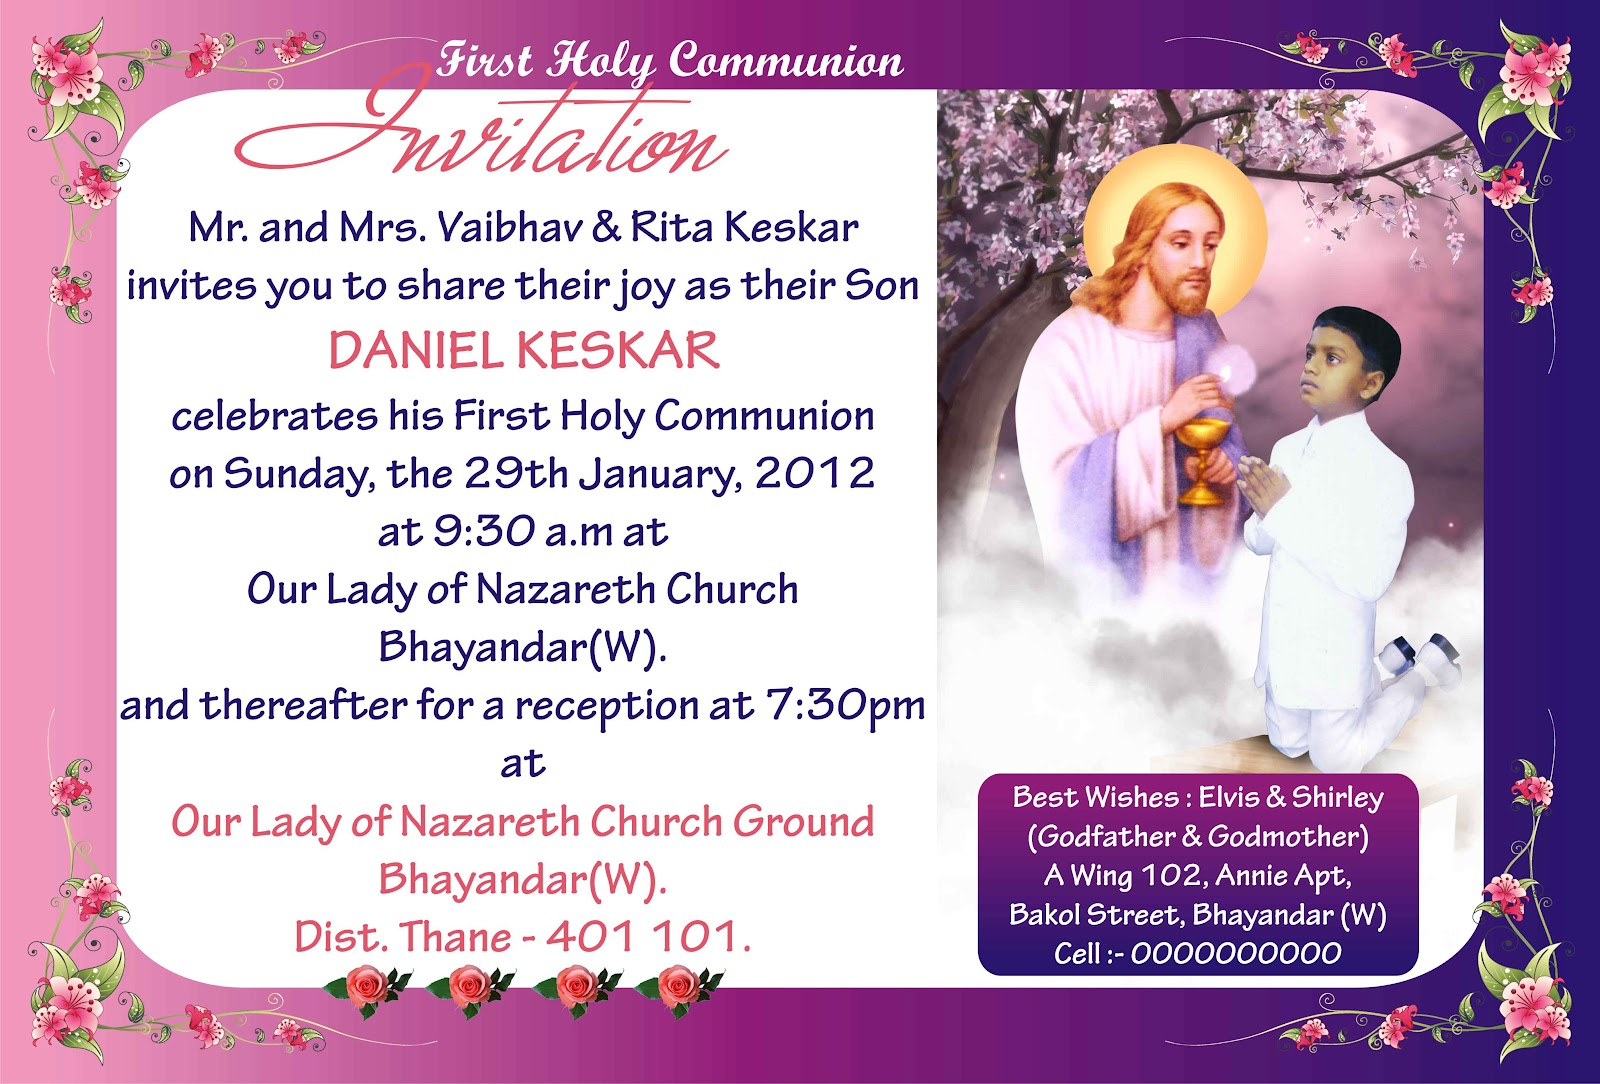 First Holy Communion Invitation Goddy Designs